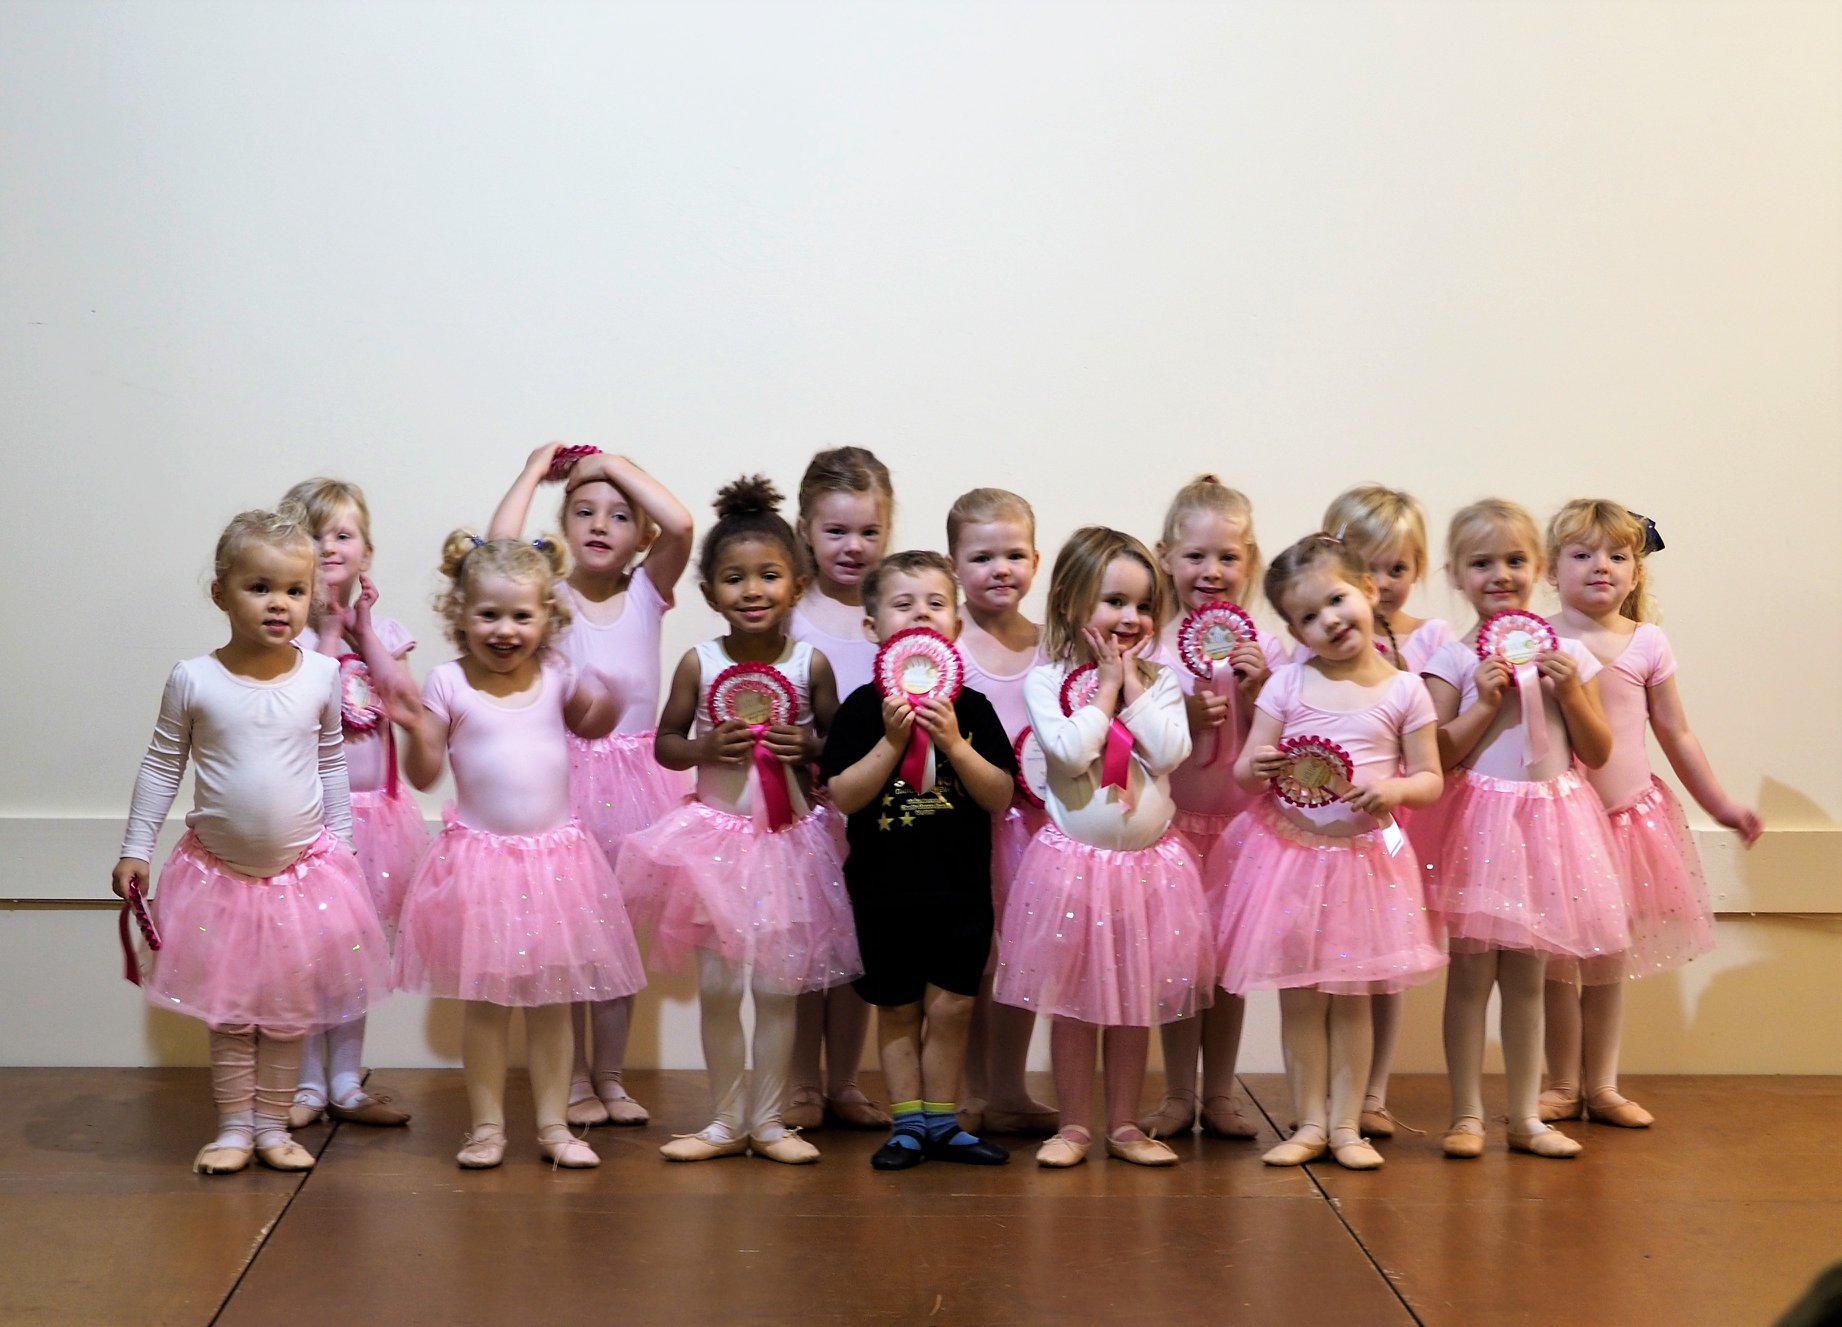 Tap and ballet dance class 3 years